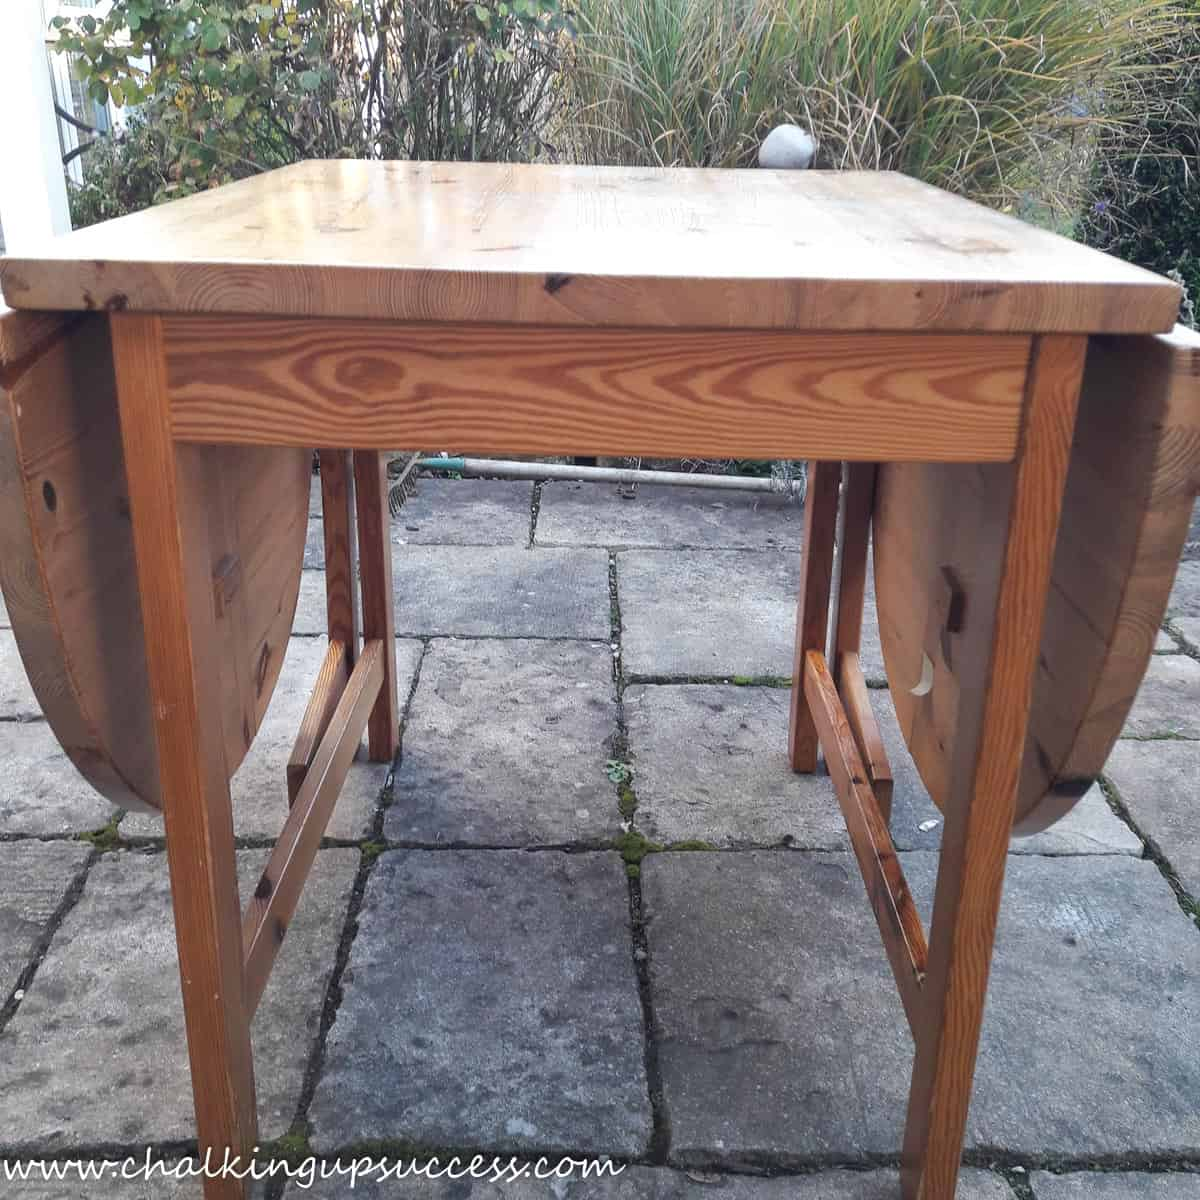 The pine table before whitewashing with chalk paint. The wood looks very orange and the tabletop is scratched.